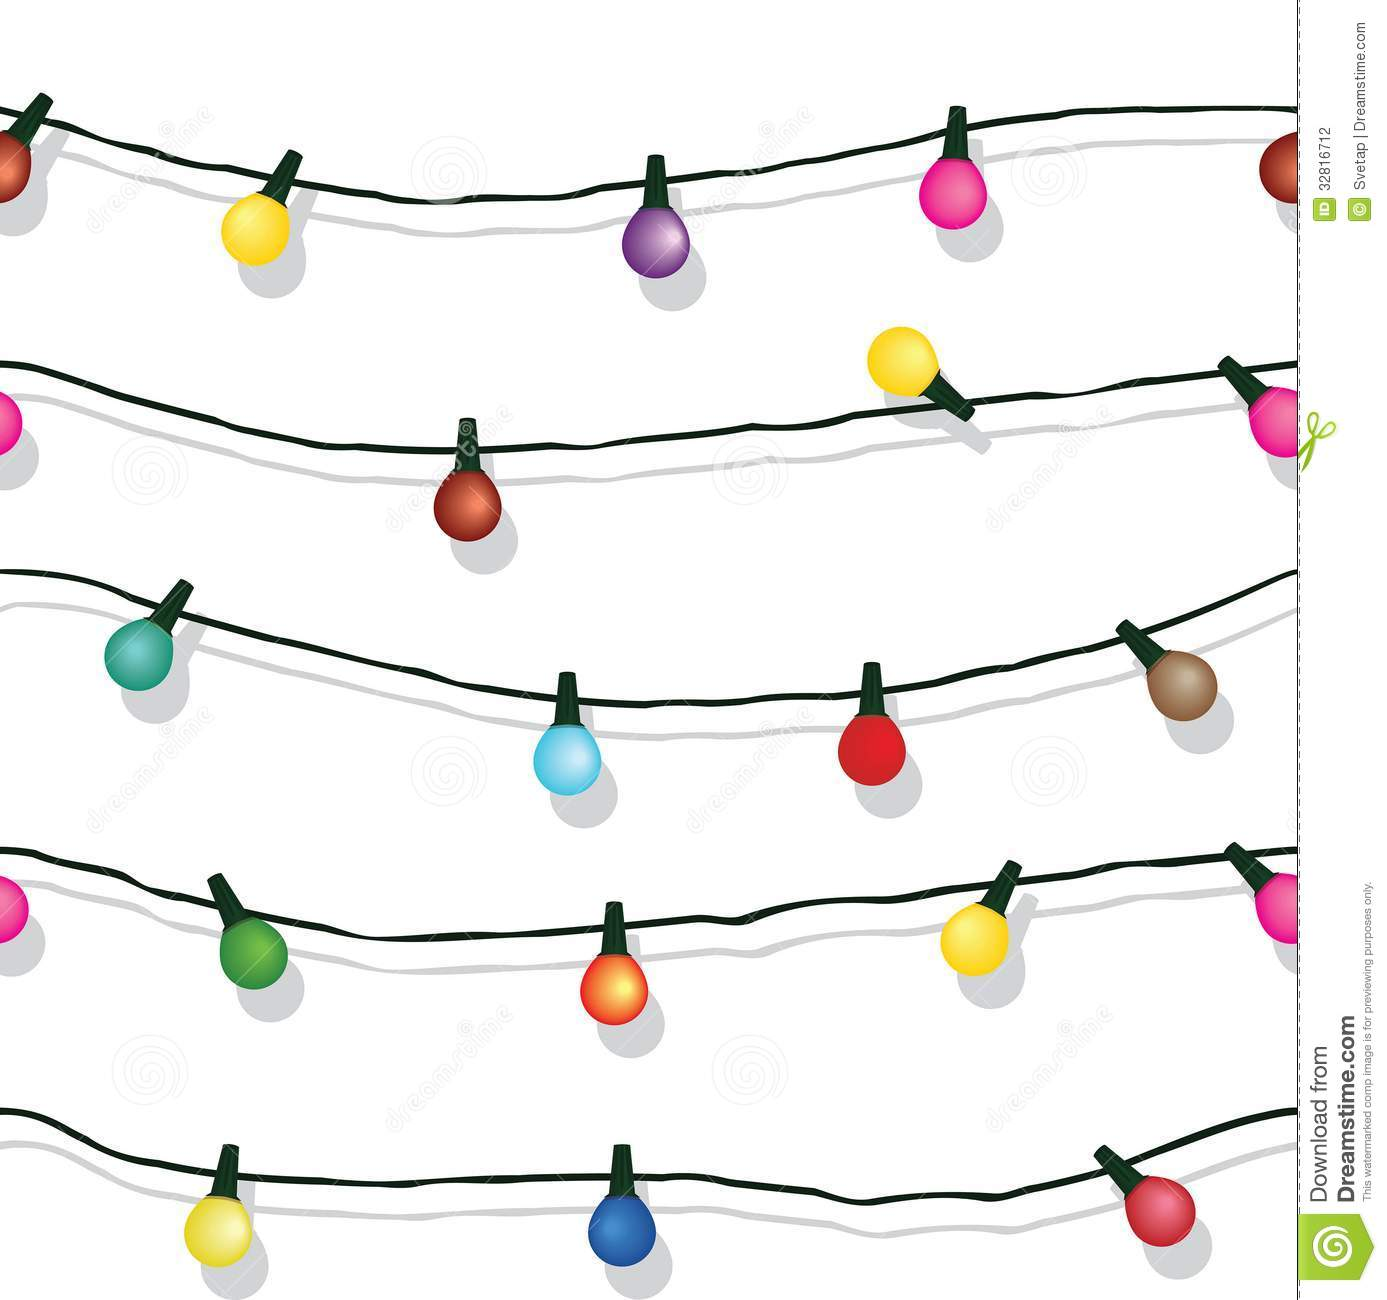 Seamless string of christmas lights isolated on white